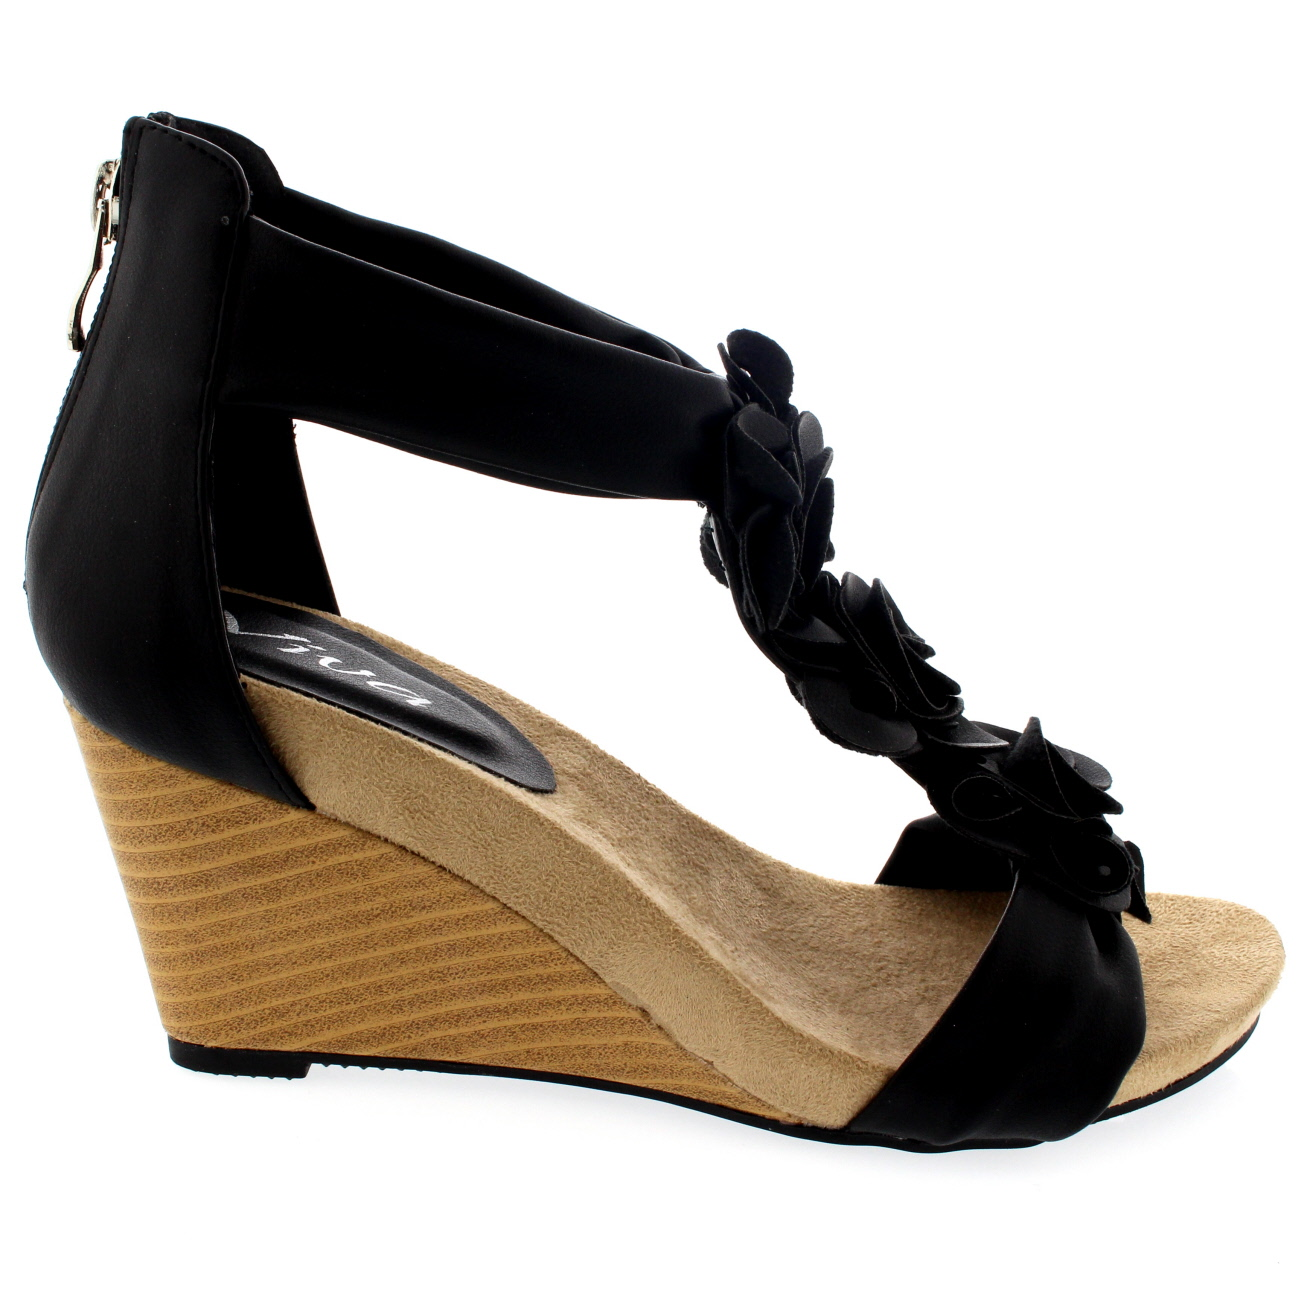 Low Heel Womens Wedges Sale: Save Up to 60% Off! Shop lolapalka.cf's huge selection of Low Heel Wedges for Women - Over styles available. FREE Shipping & Exchanges, and a .